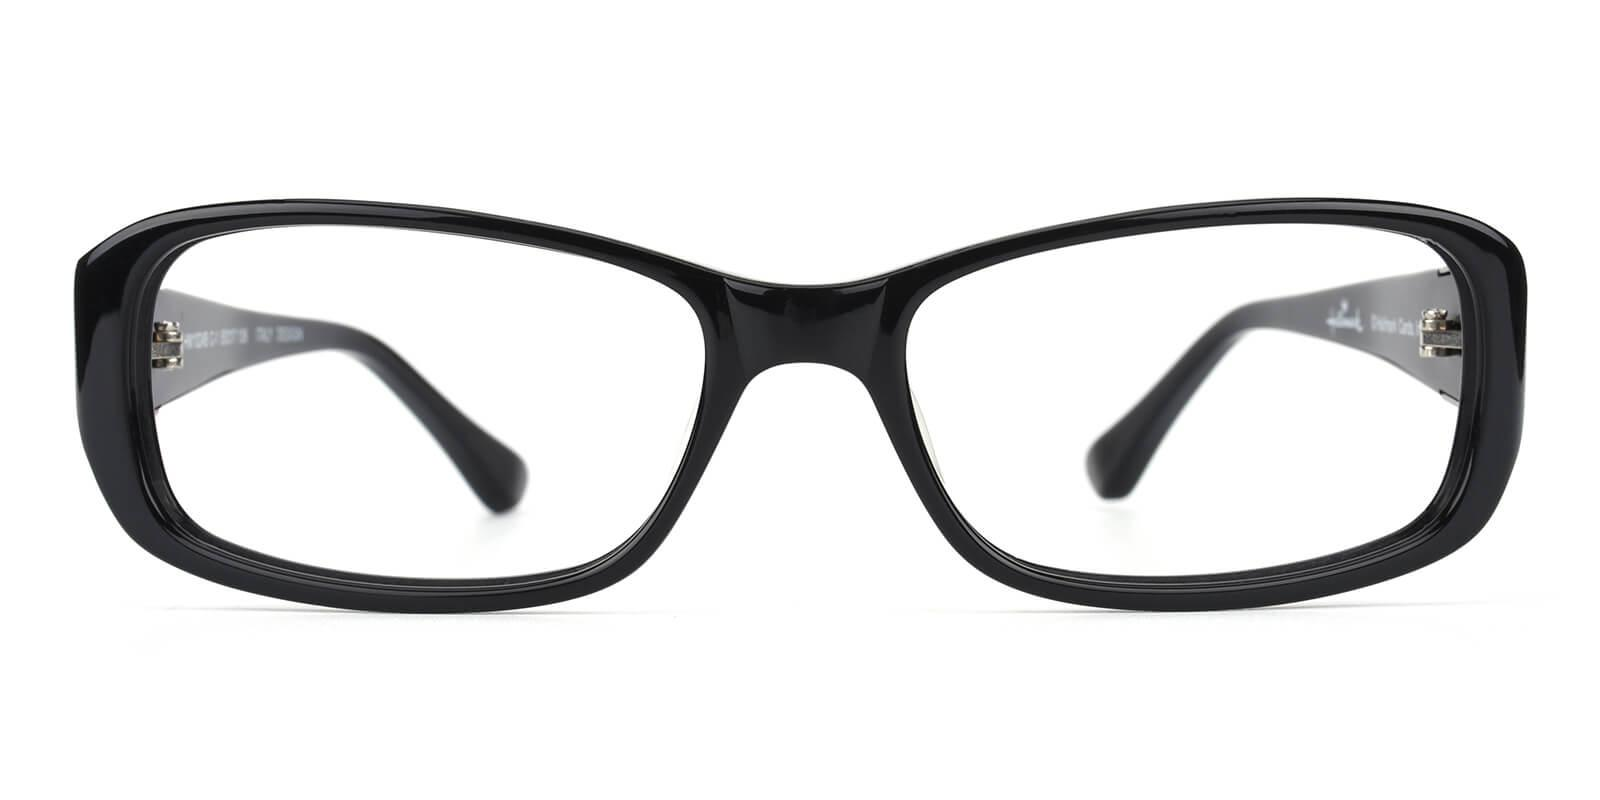 Hgytical-Black-Rectangle-Acetate-Eyeglasses-additional2